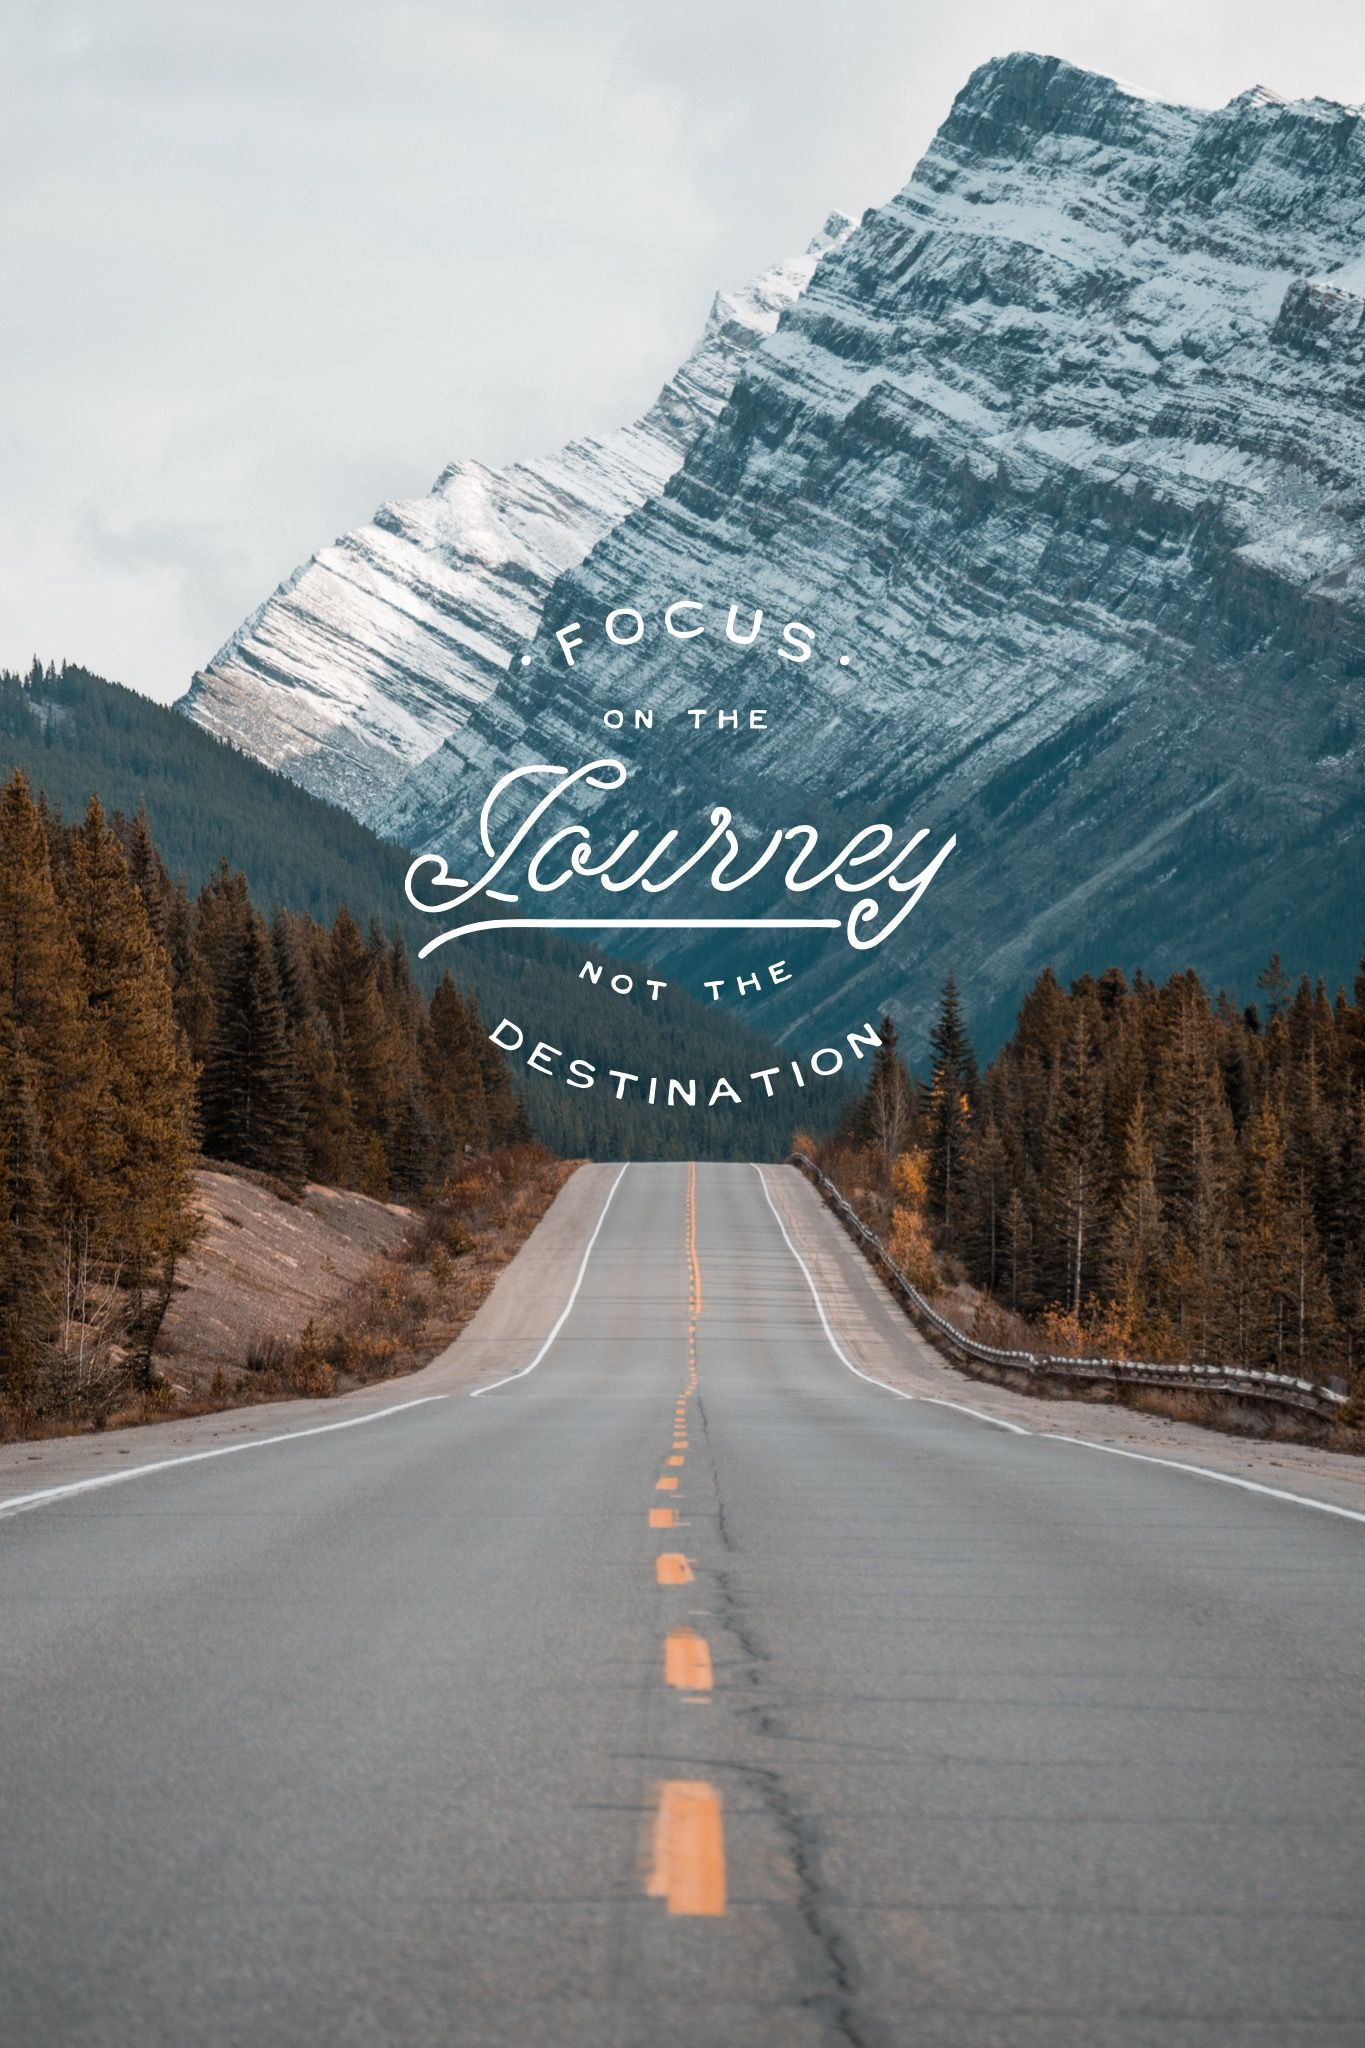 Iphone X Perspective Wallpaper Size Focus On The Journey Not The Destination Collect And Edit